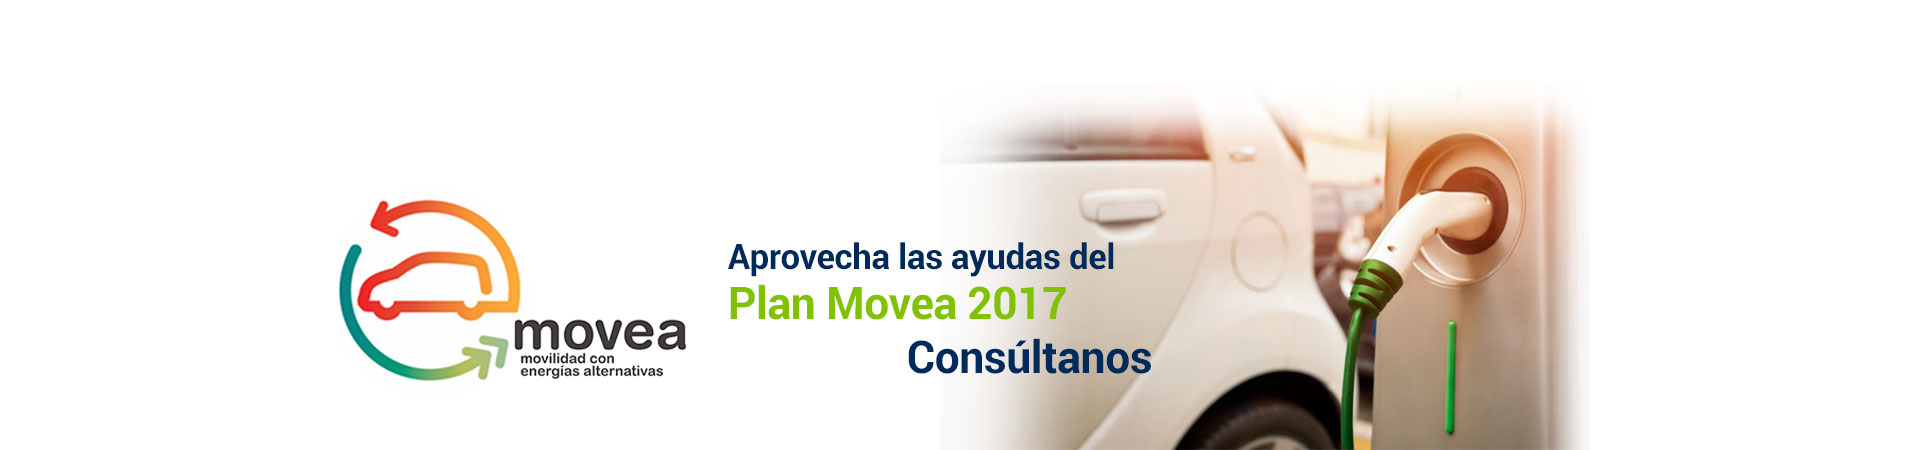 Plan Movea 2017